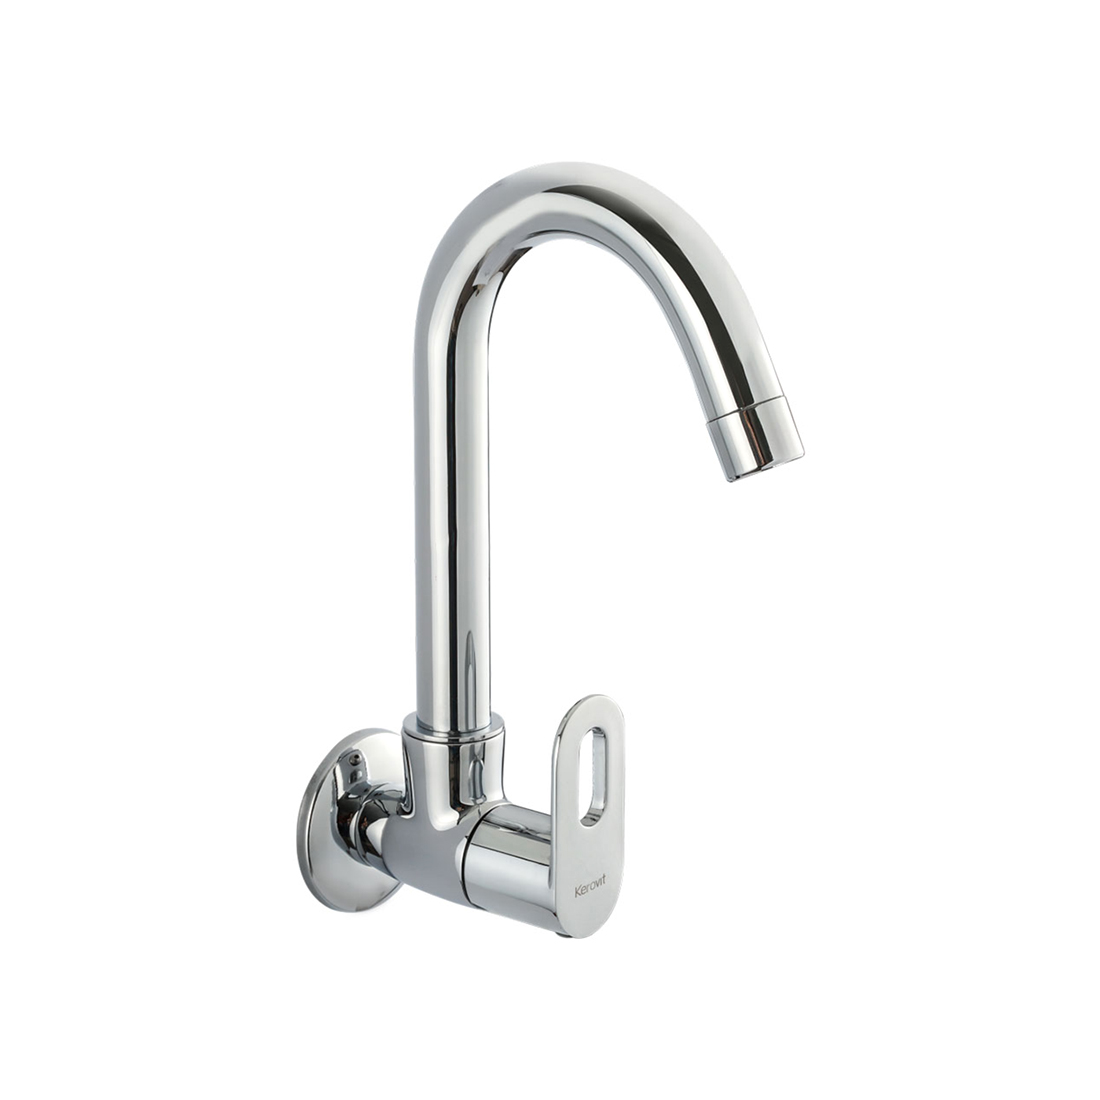 Kerovit Trendy KB2111025 Sink Cock With Swivel Spout and Flange